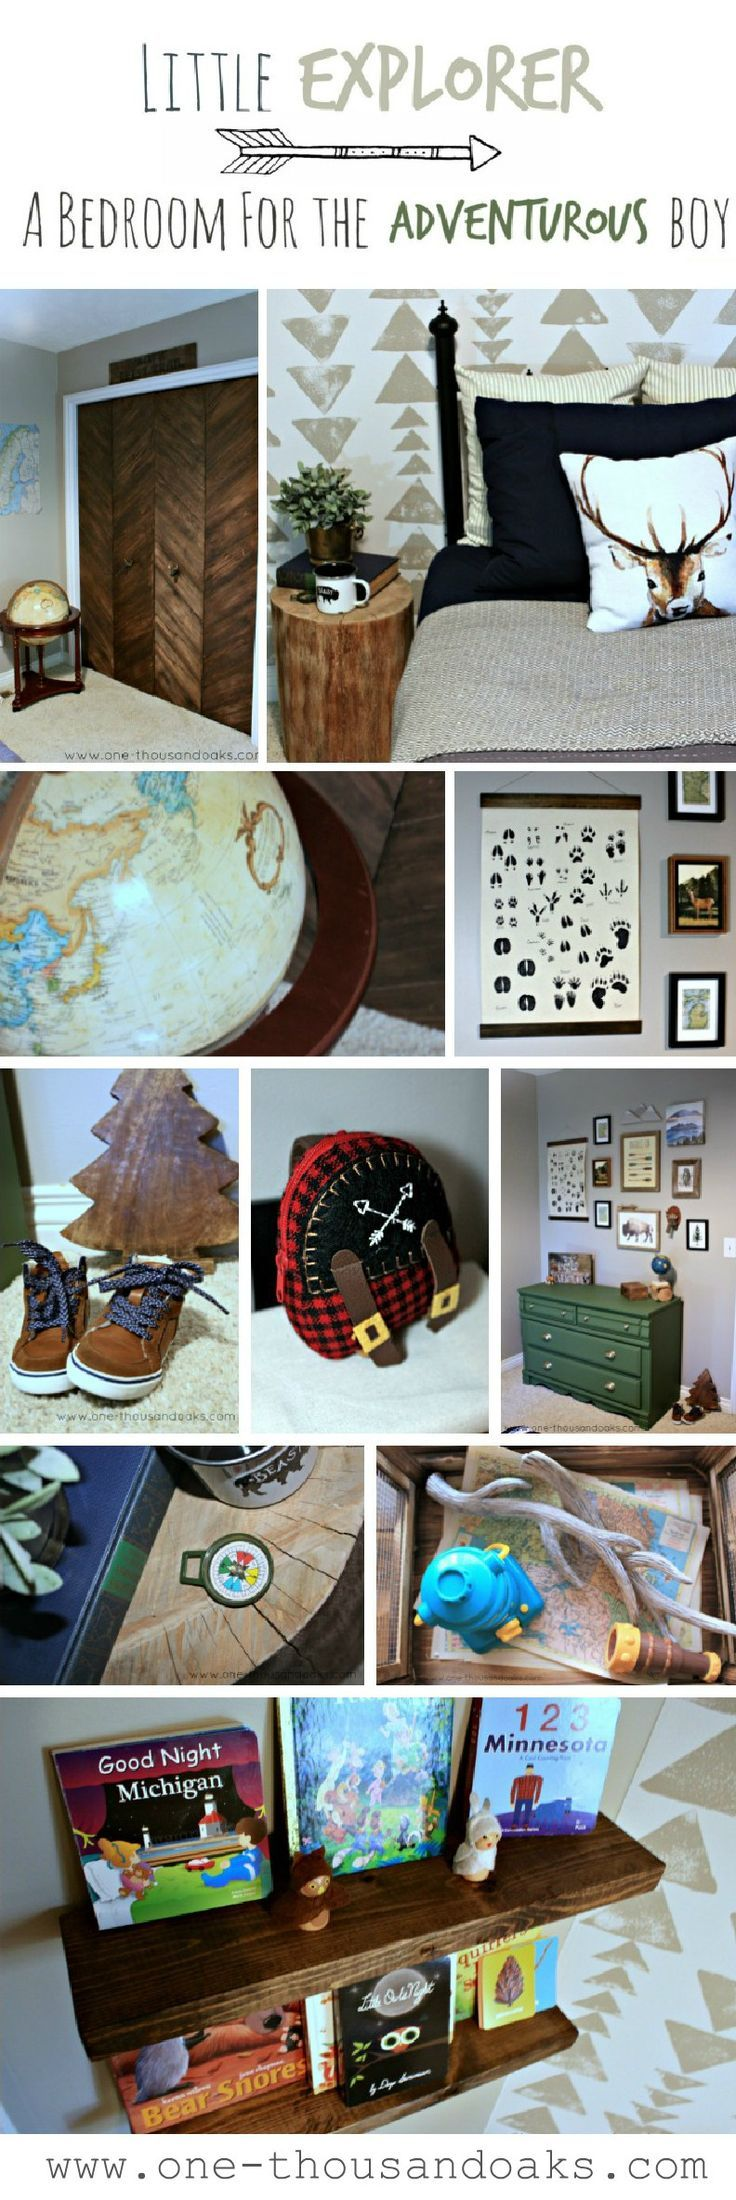 Best 25+ Little boy bedroom ideas ideas that you will like on ...